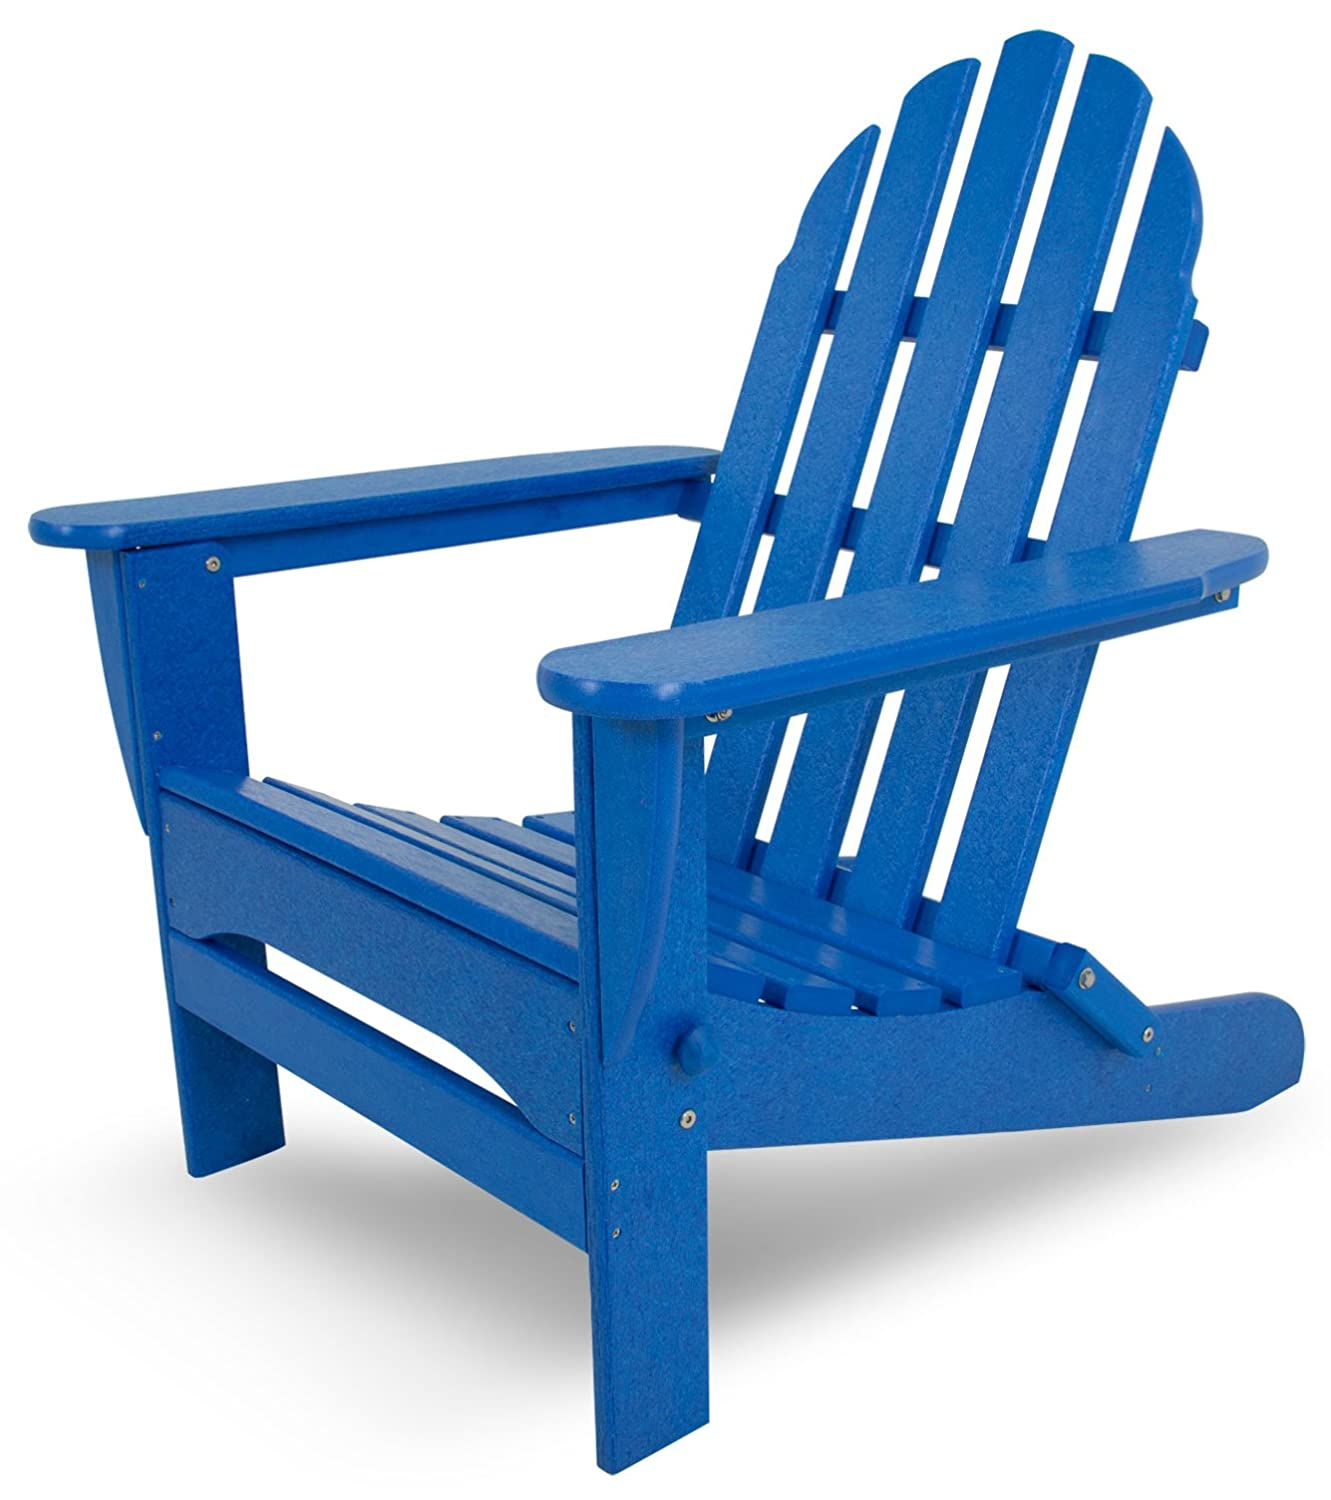 plastic patio chairs walmart. Amazon.com : POLYWOOD AD5030PB Classic Folding Adirondack, Pacific Blue Adirondack Chairs Garden \u0026 Outdoor Plastic Patio Walmart R